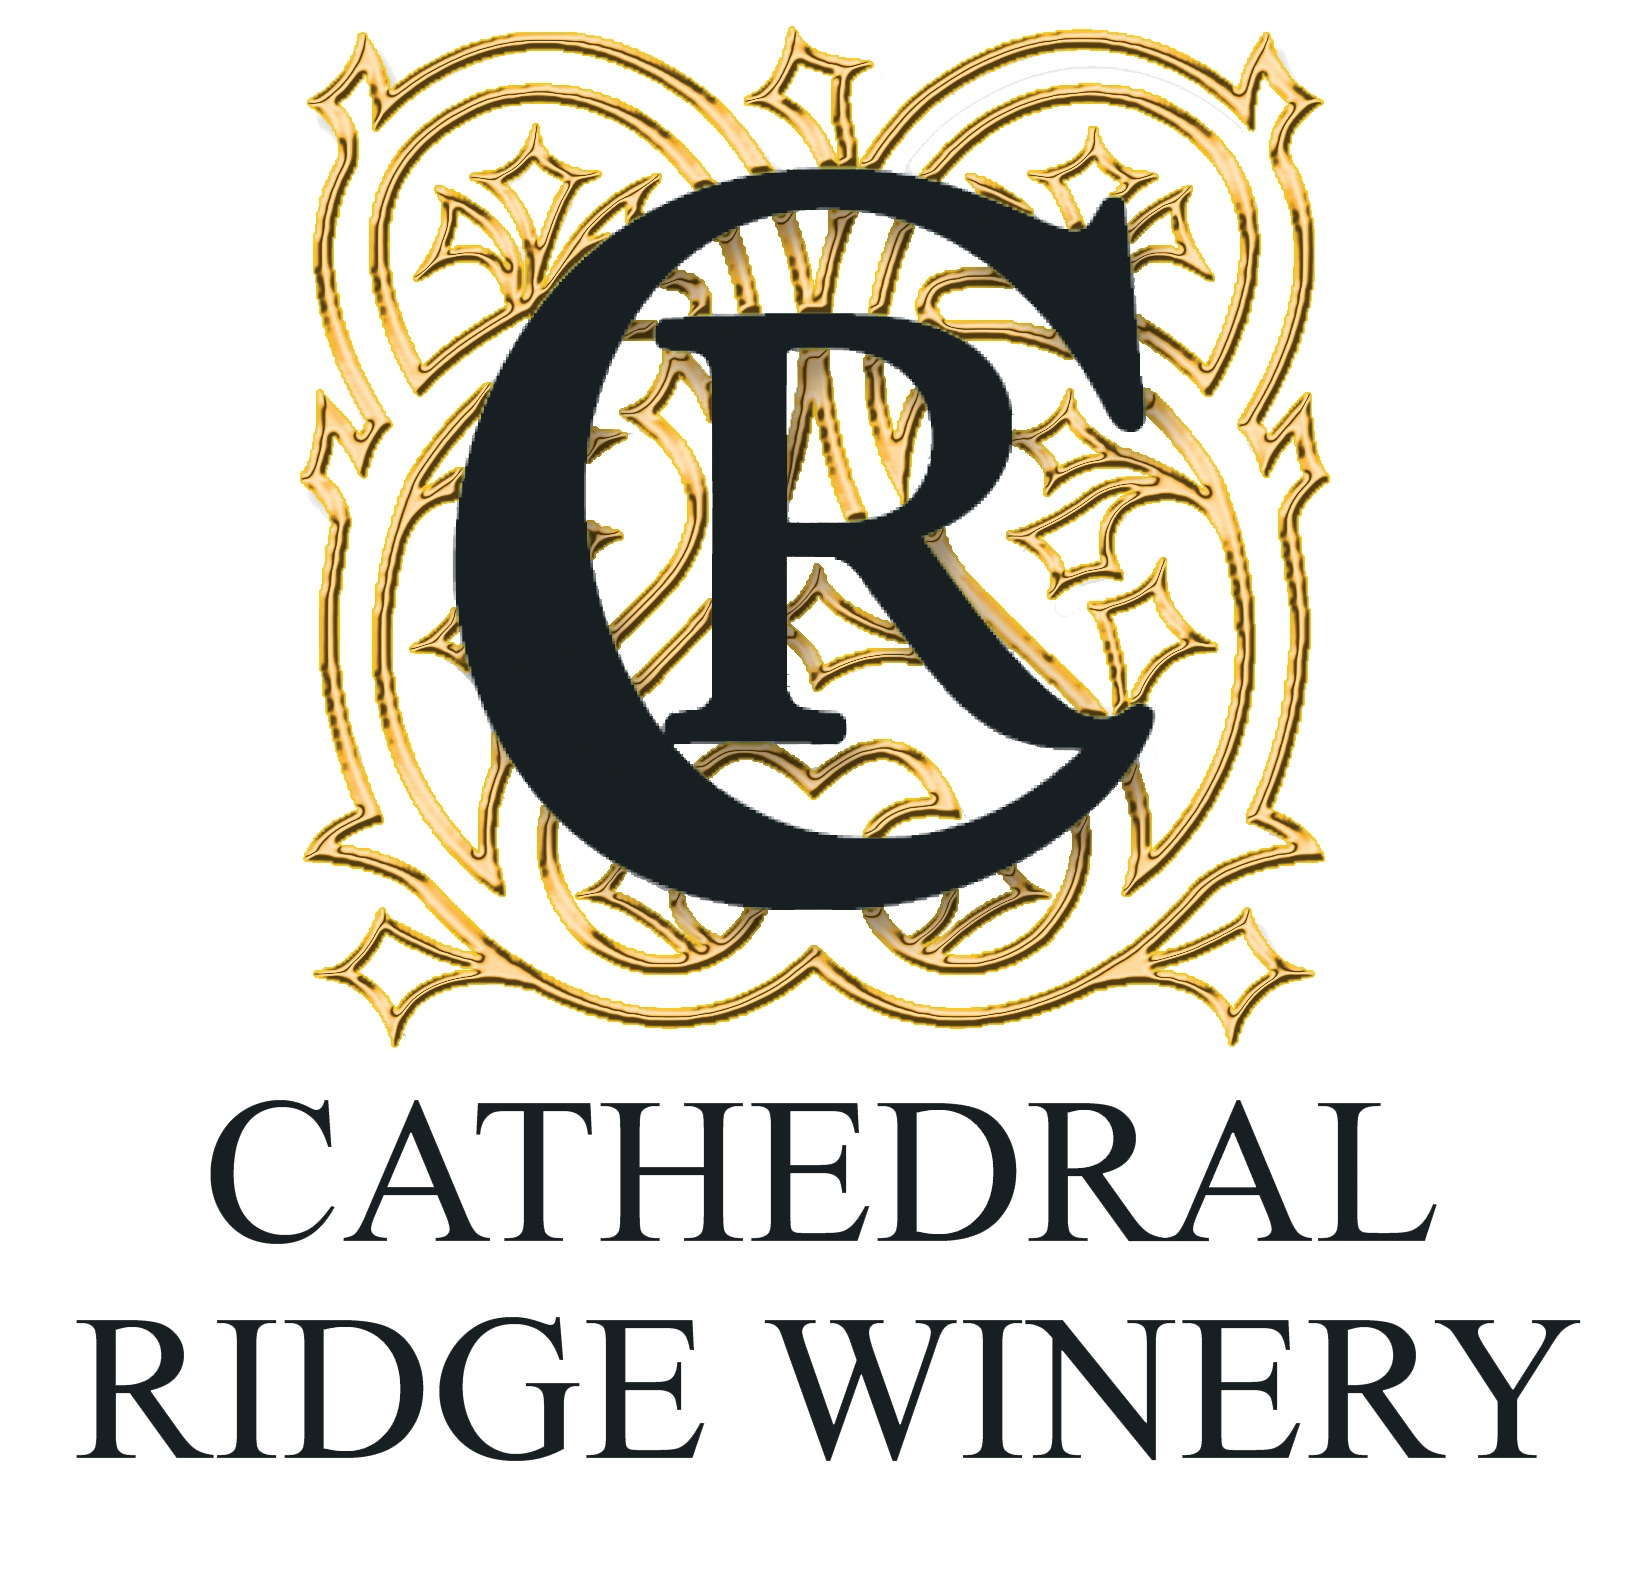 - 800-516-8710 or crw@cathedralridgewinery.com4200 Post Canyon Dr., Hood River, OR 97031